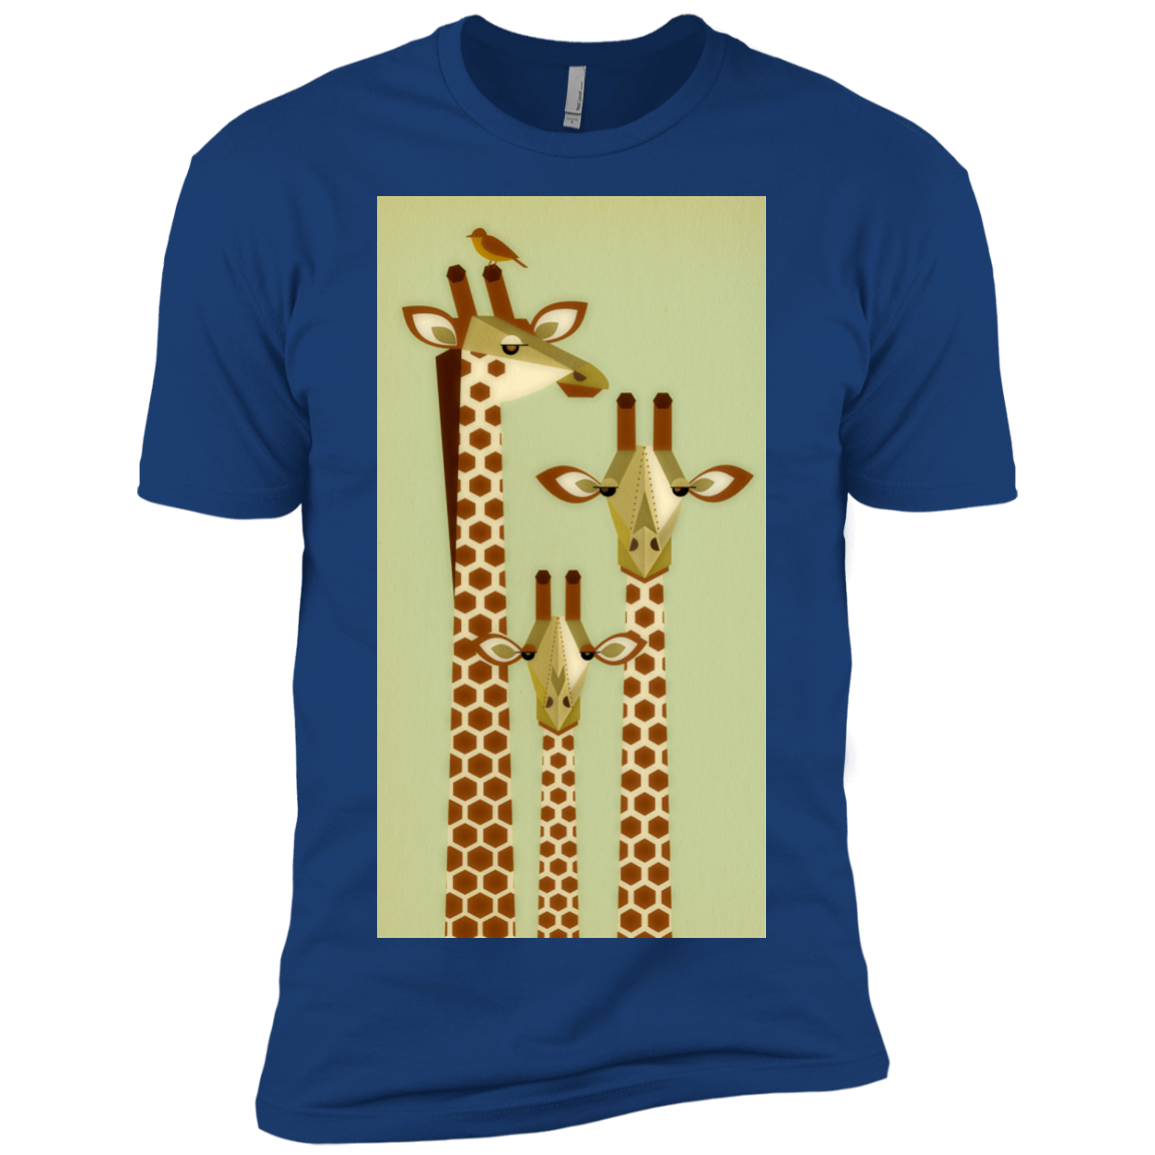 Giraffe Family Art Print Matching Family T-Shirts - The Sun Cat